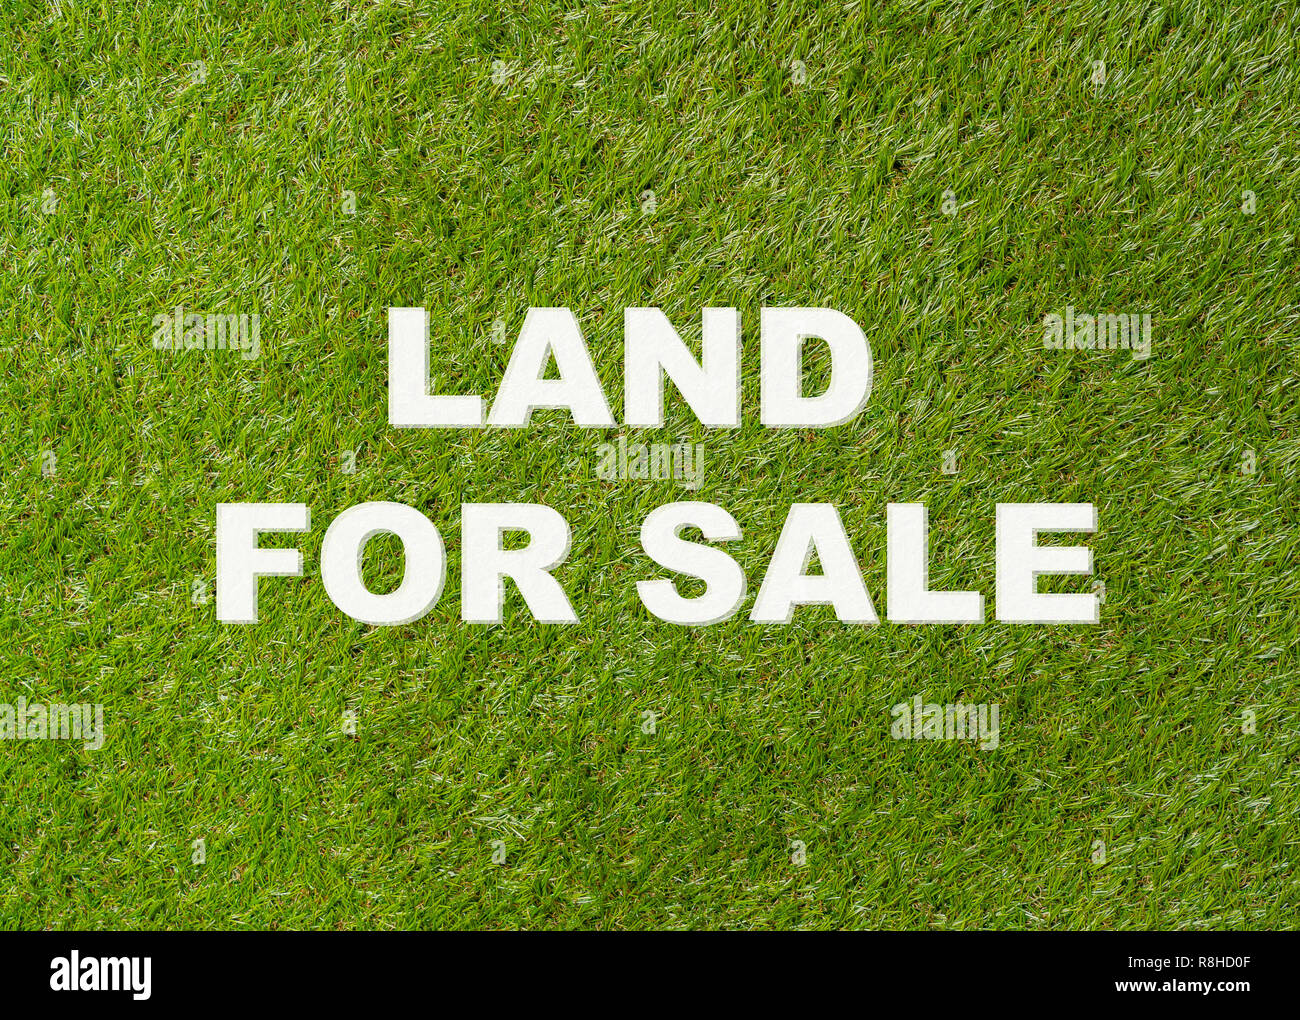 Conceptual image with text written Land for Sale on green grass field background of Property investment and market and Real estate agency and industri - Stock Image